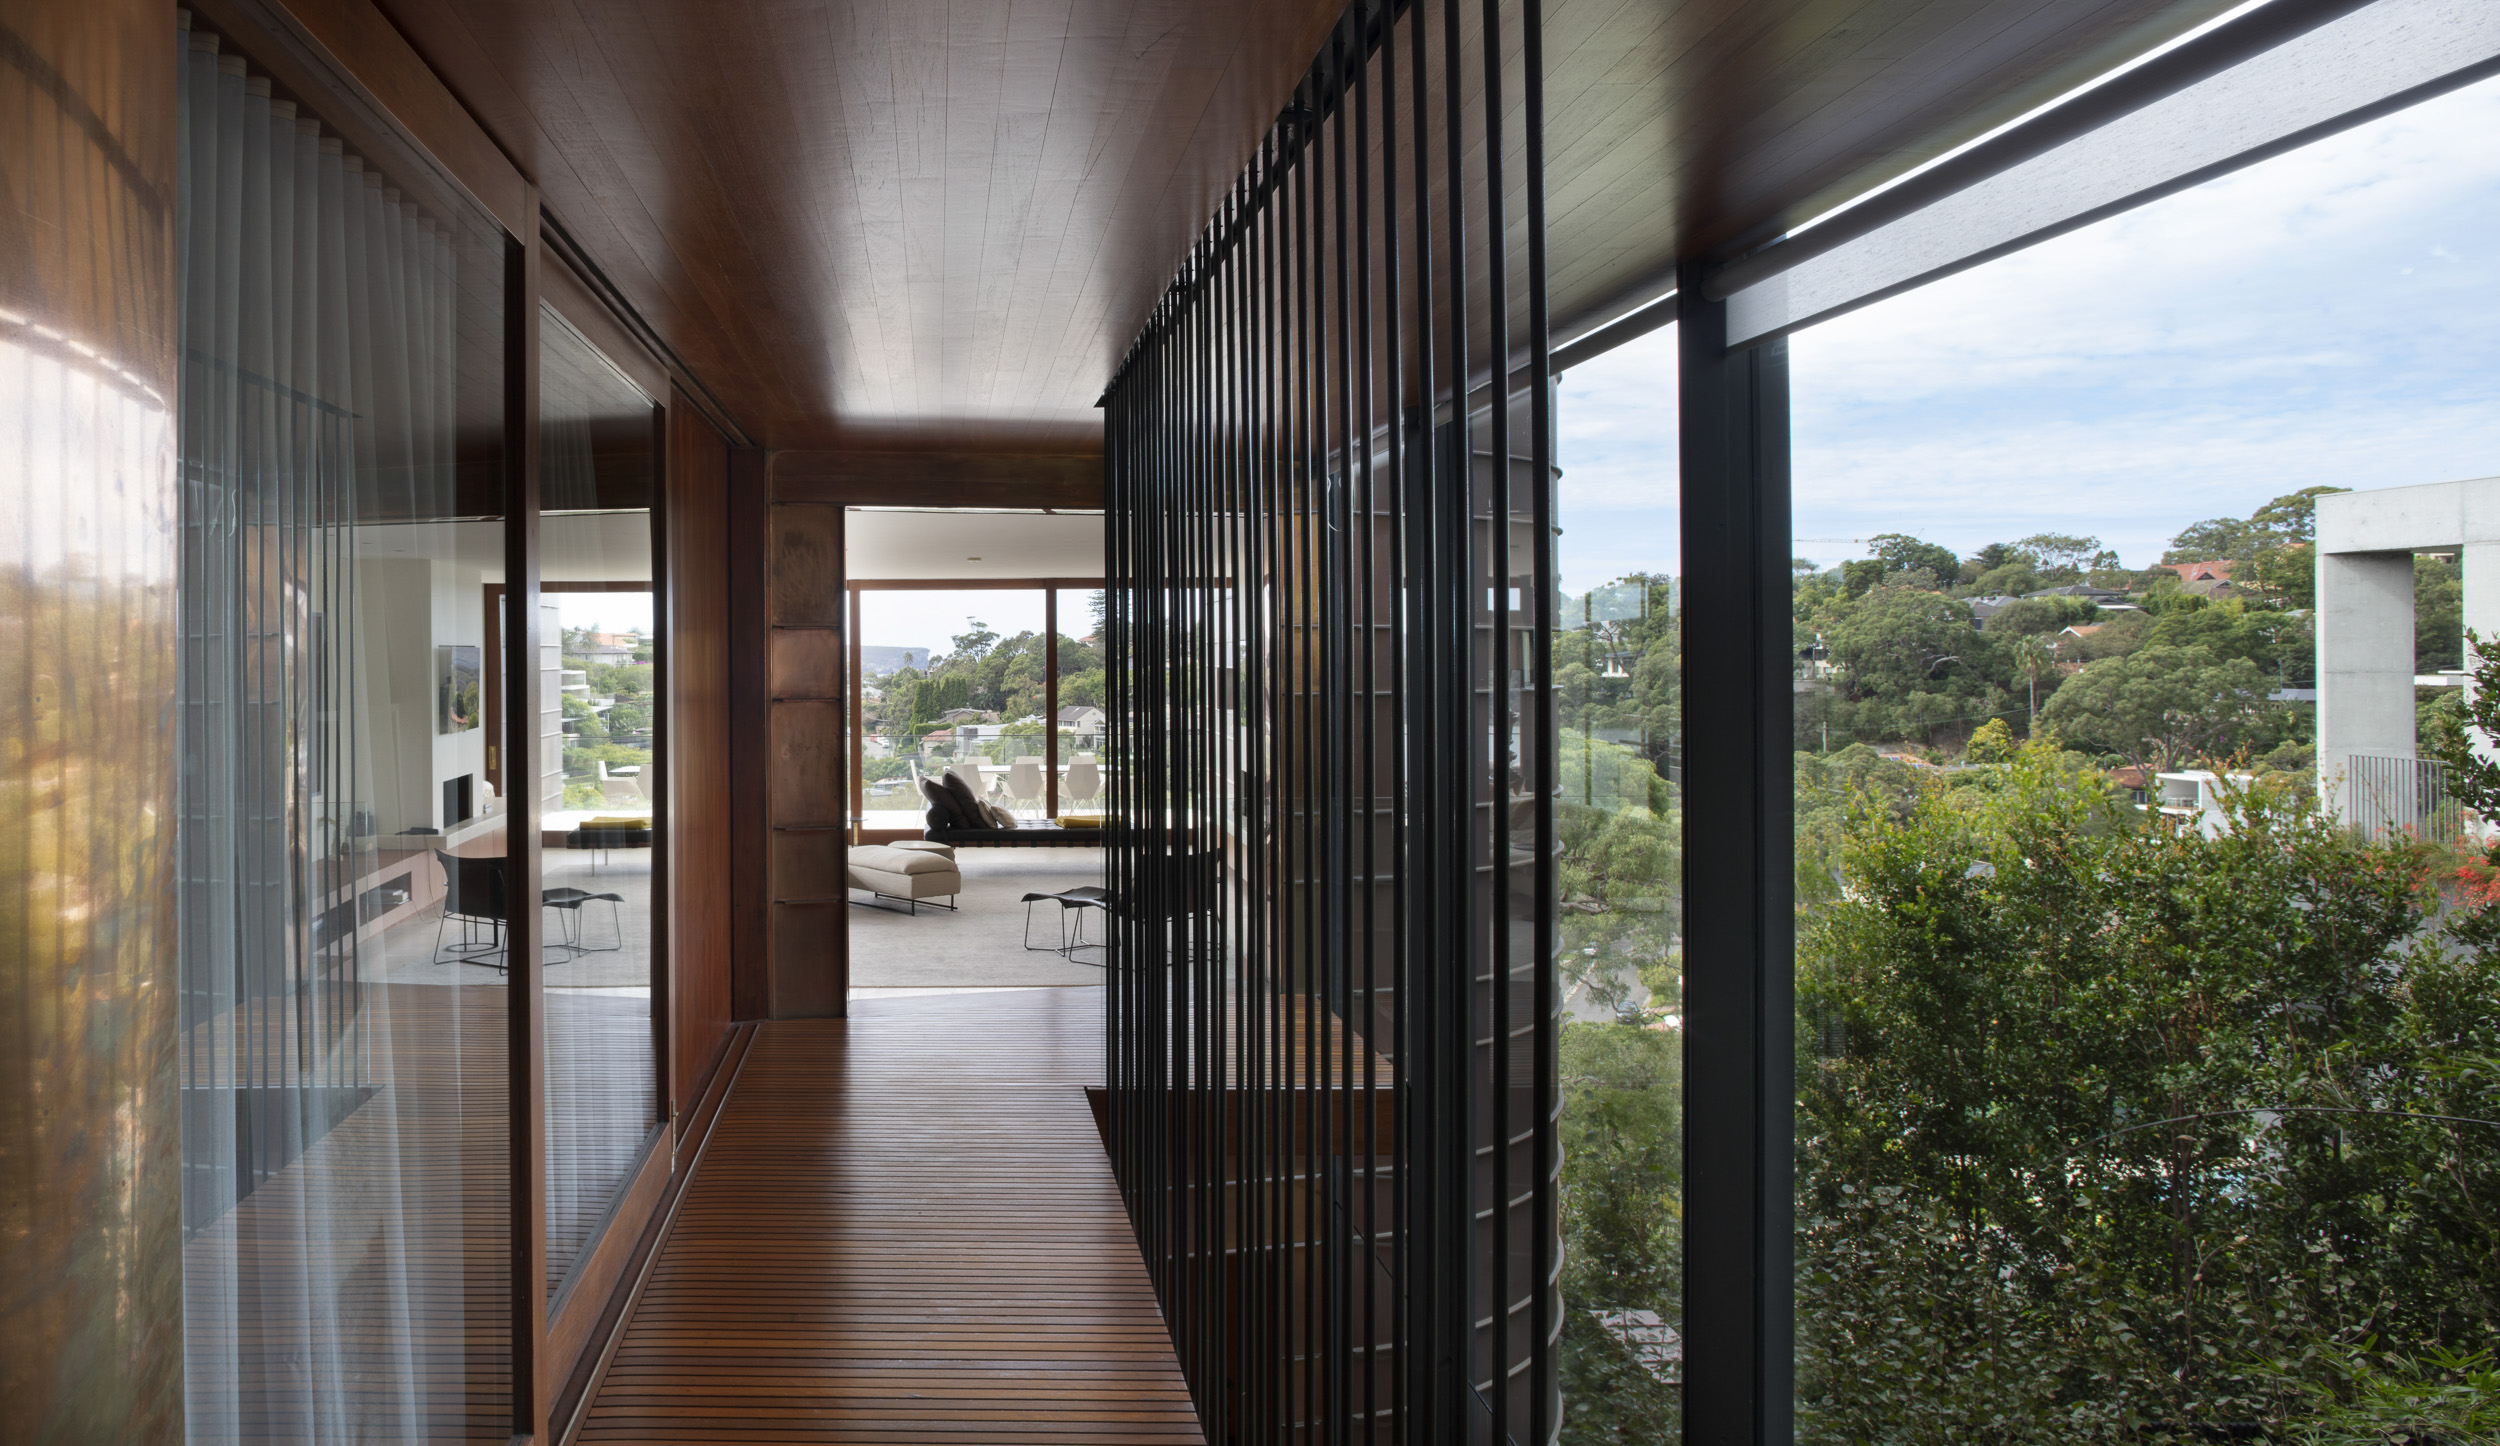 residential_architect_photographer_sydney_24.jpg